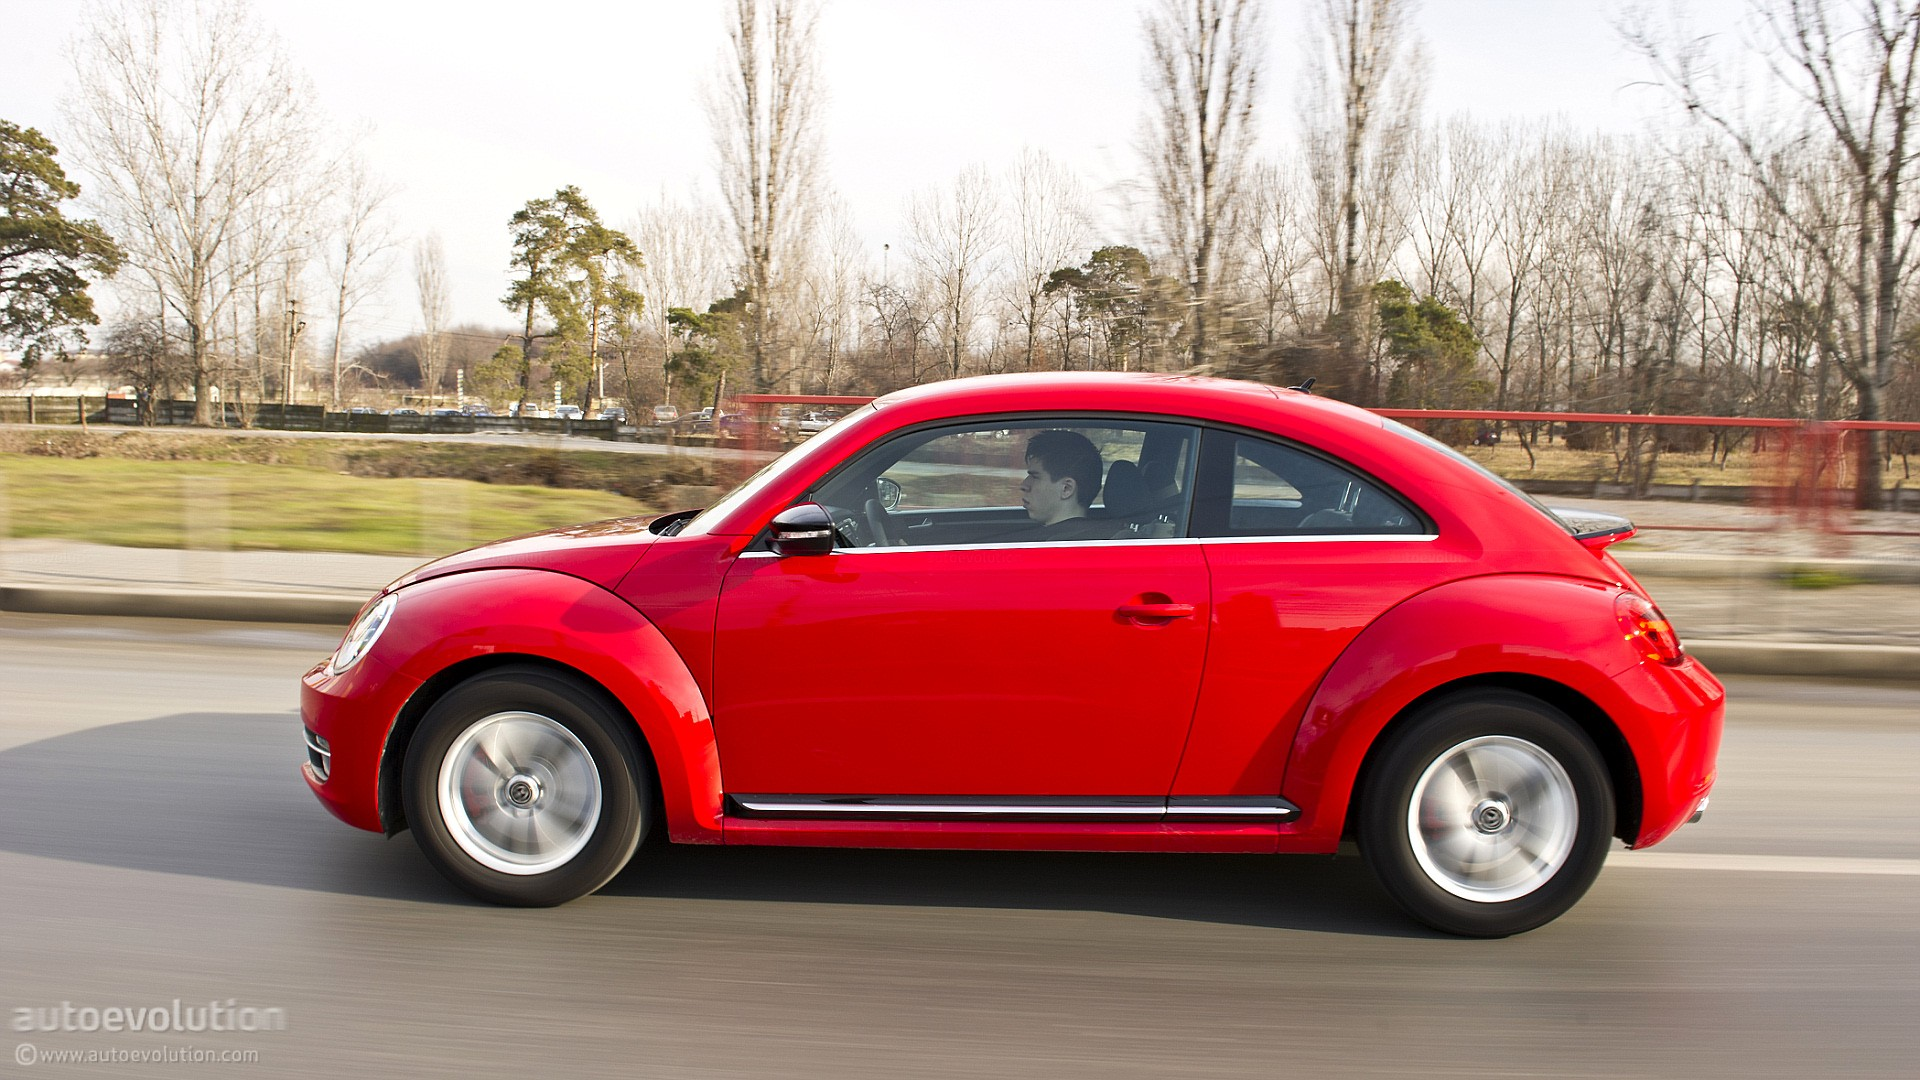 volkswagen wants to stop making beetle 3 door polo to increase profits autoevolution. Black Bedroom Furniture Sets. Home Design Ideas